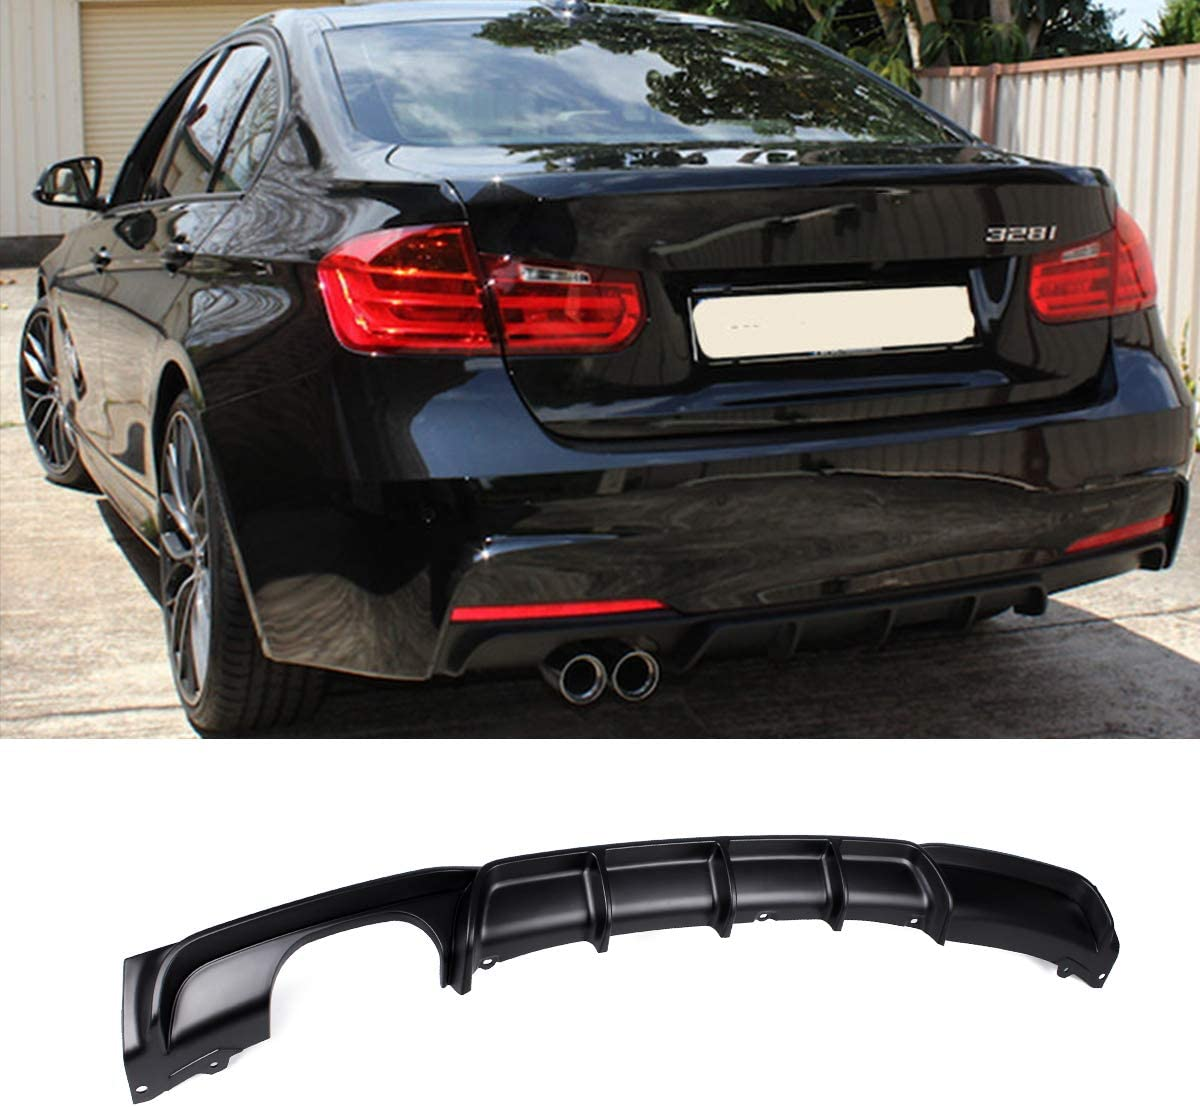 FRP M Style Rear Bumper Diffuser Lip Single Muffler Dual Out for BMW 3 Series F30 320i 325i 328i 335i M Sport Gloss Black Fandixin F30 Diffuser